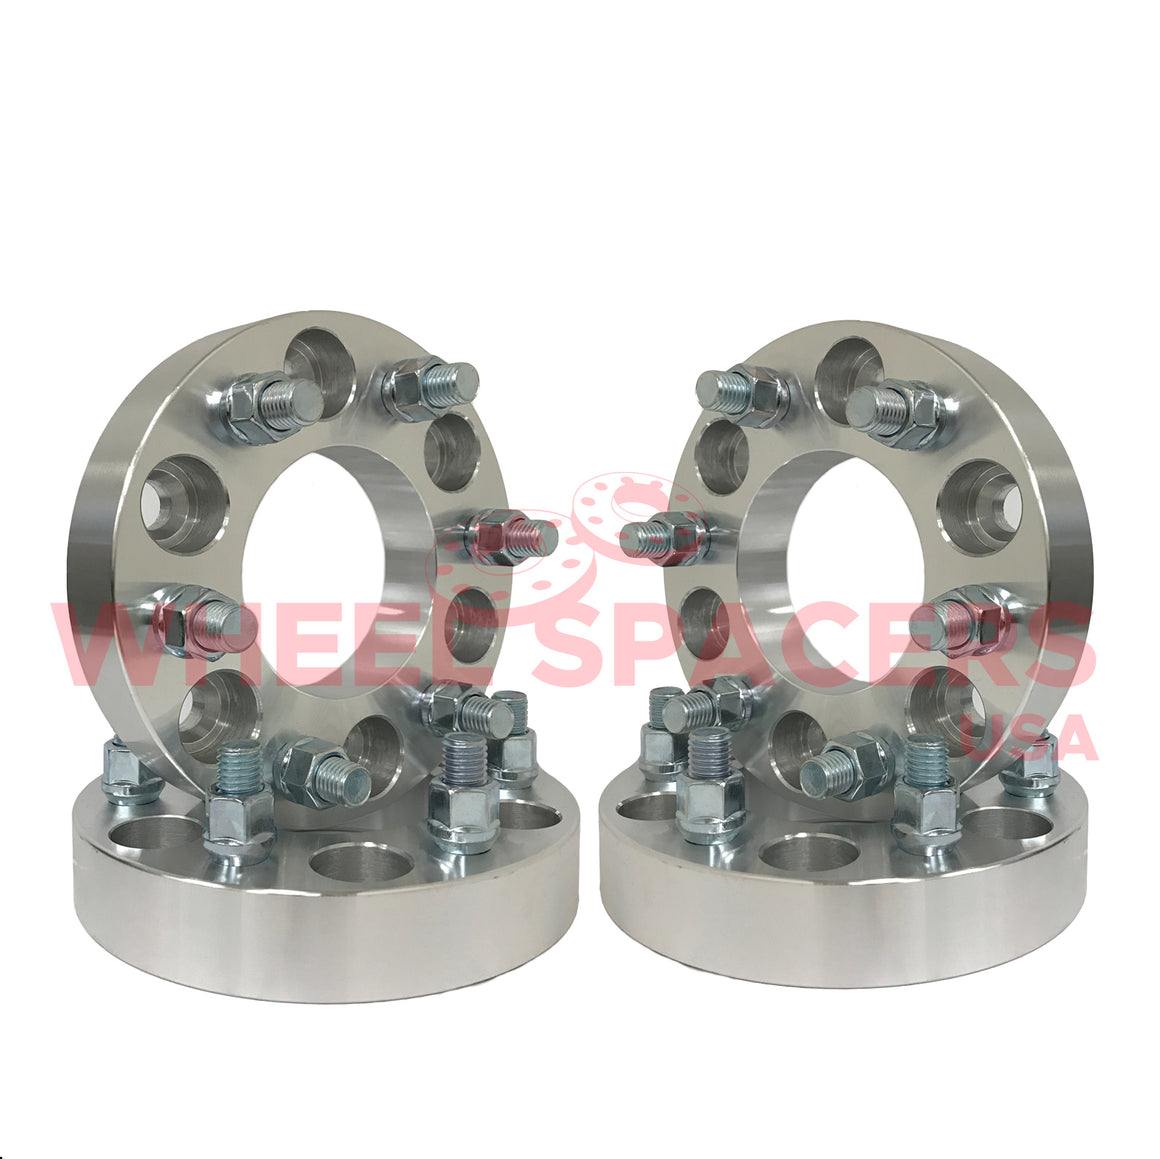 4) 6x5.5 Wheel Spacers For Chevy & GMC 6 Lug Trucks Also Known as 6x139.7 14x1.5 Threads Fits Most 6 Lug Chevy & GMC 108mm Big Bore